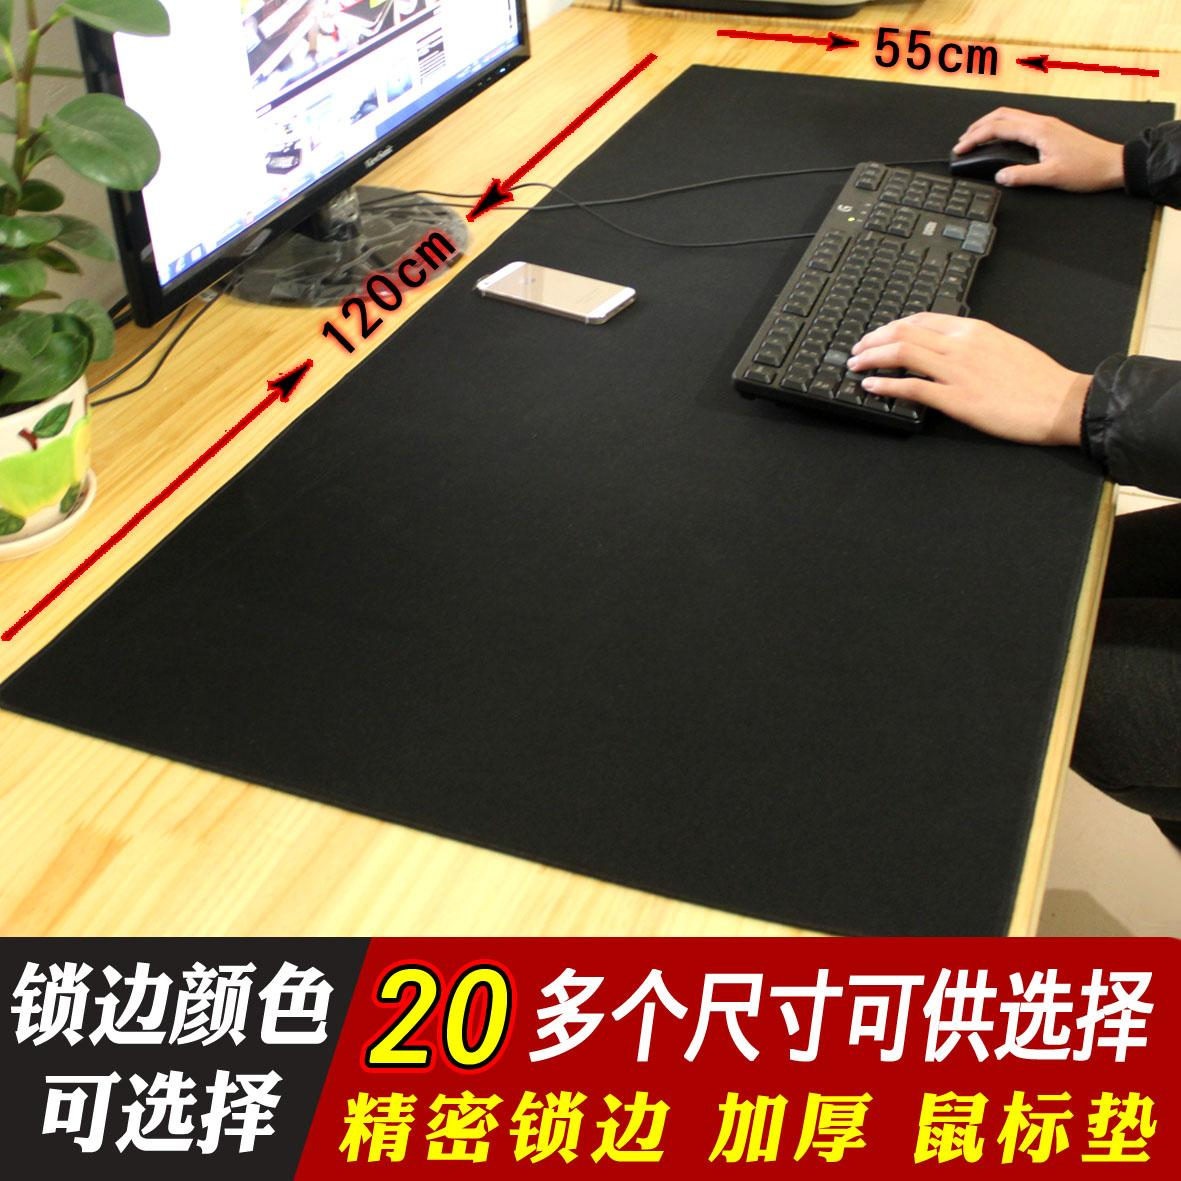 Gaming Mouse Mat cf lol Mouse Pad Large Thick Large Size Lock Covered Edge Desk Pad